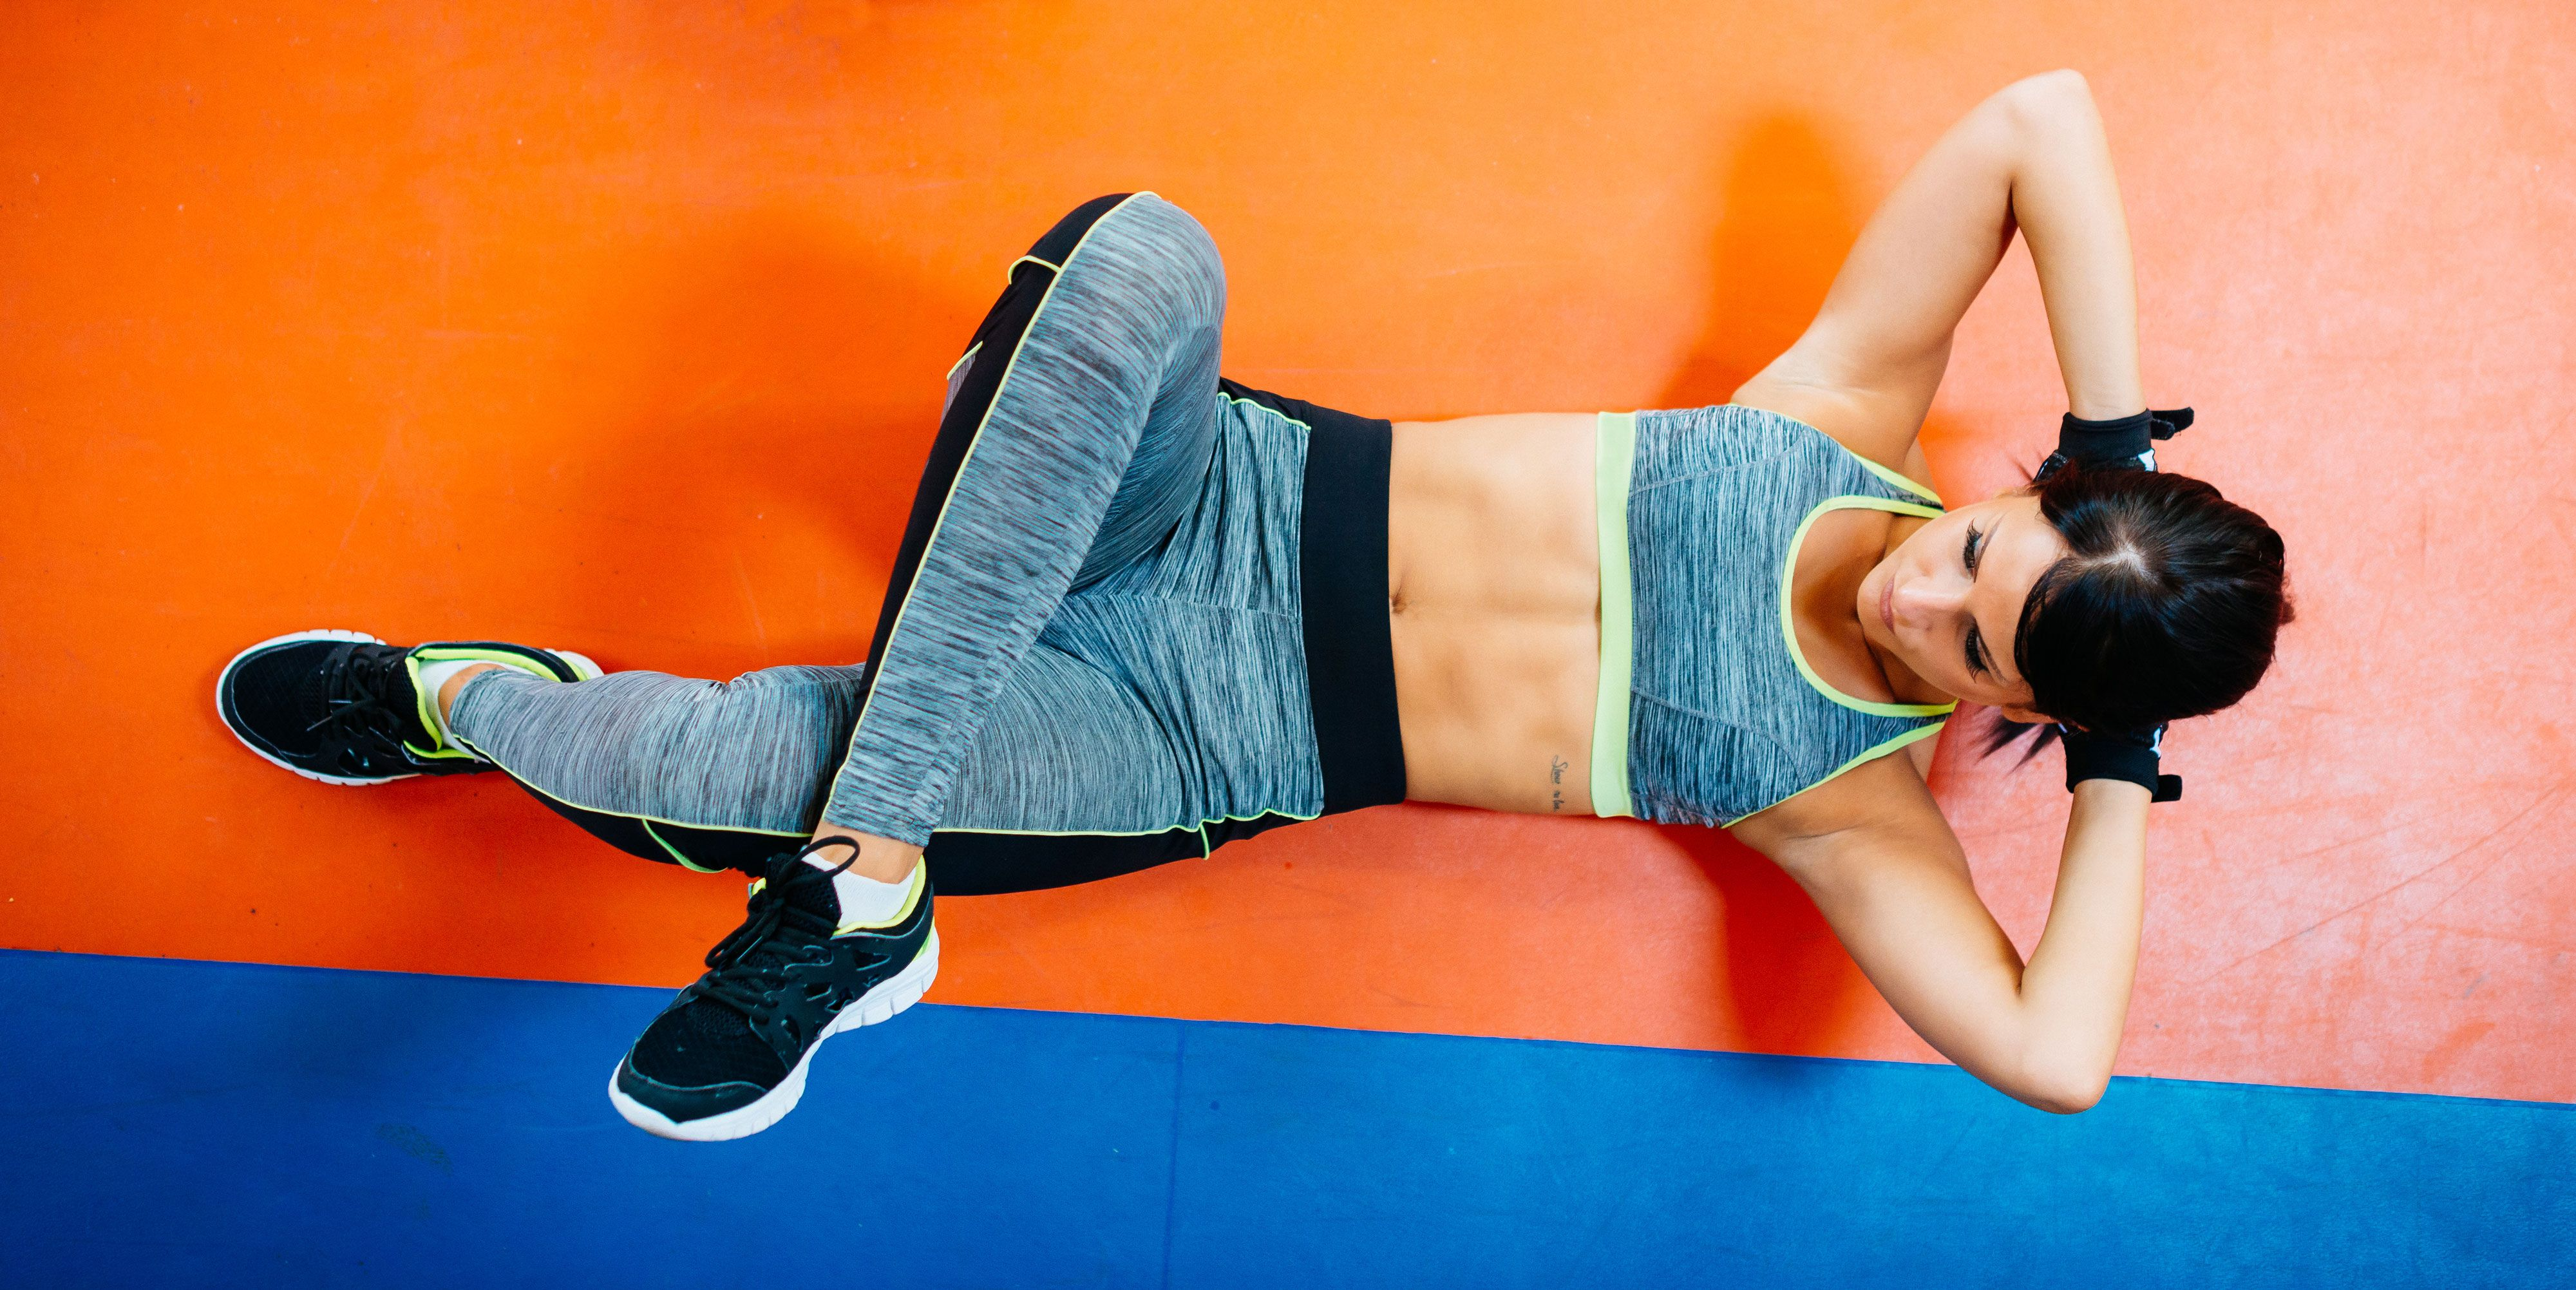 Watch 6 Fitness Trends that Need to Disappear in 2019 video